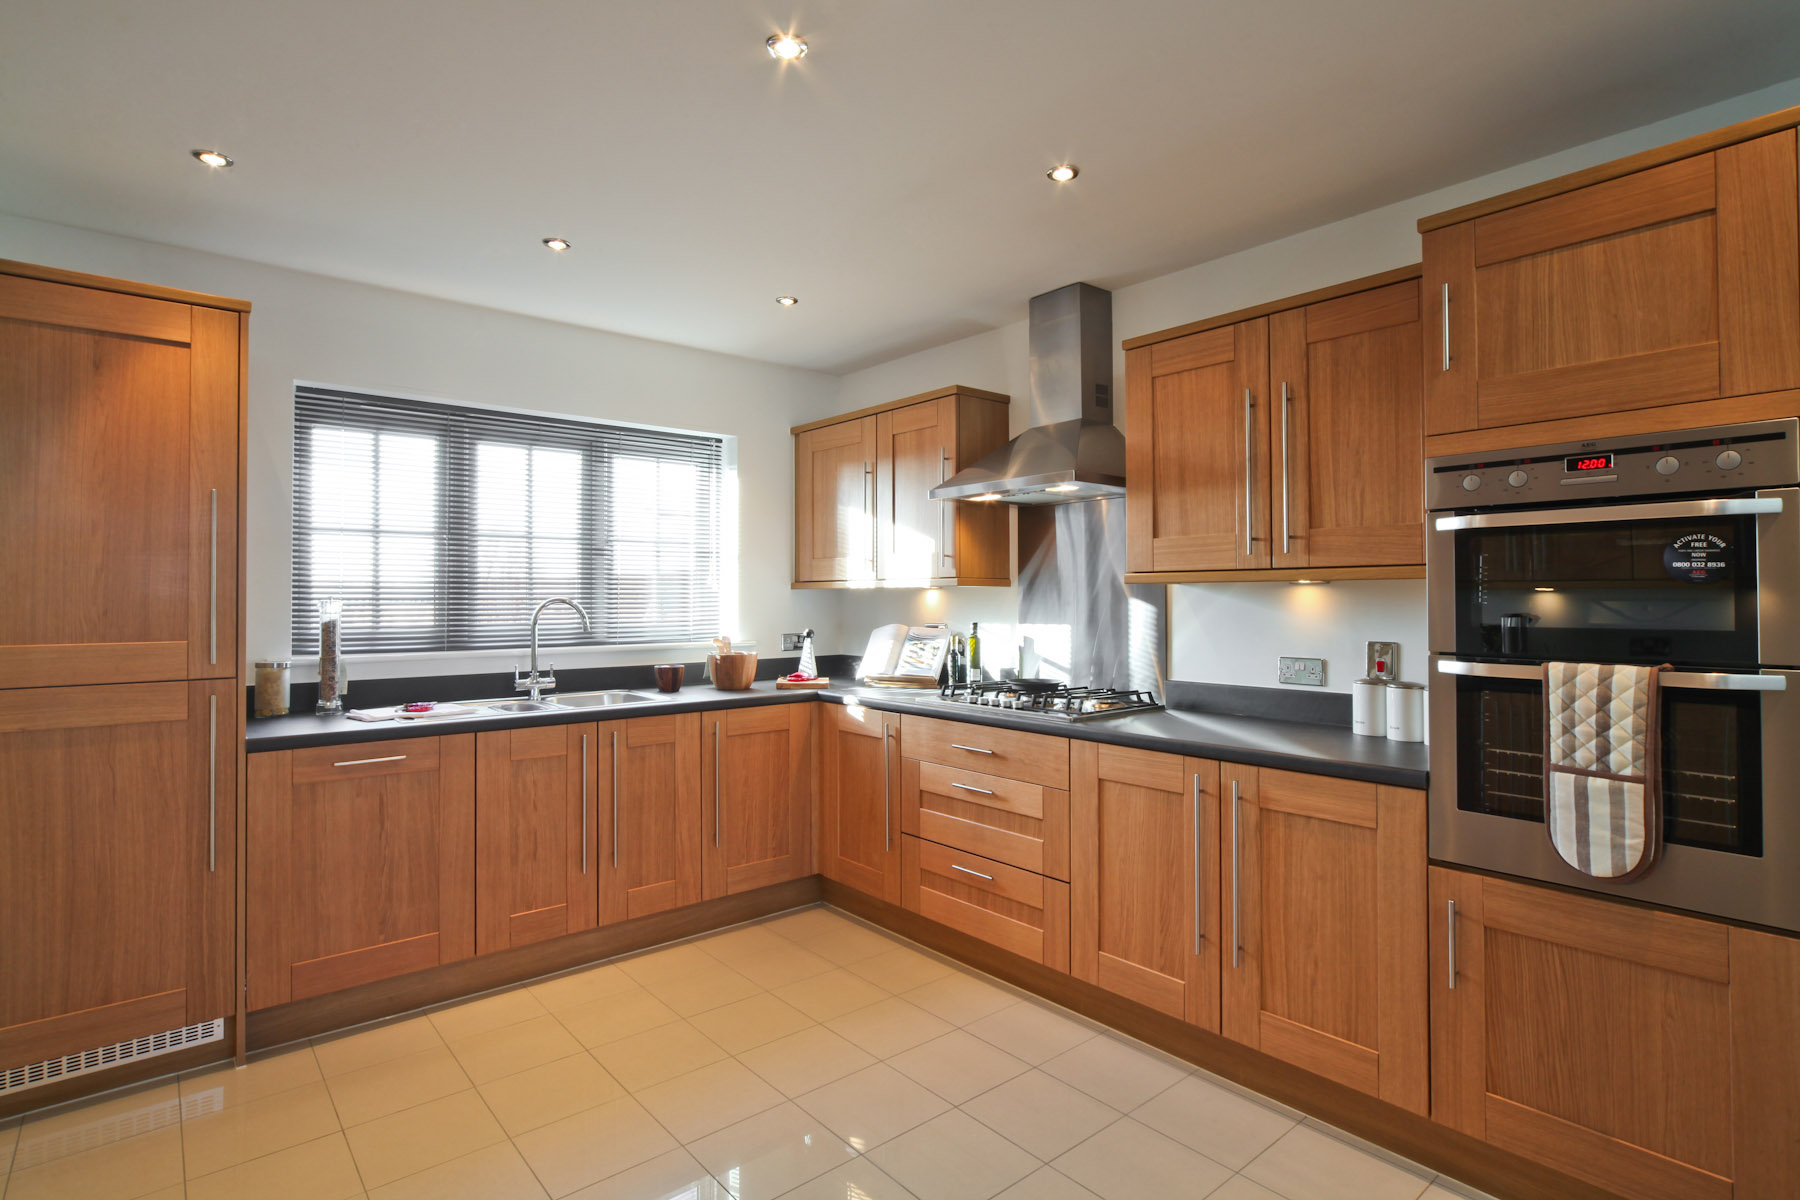 Taylor Wimpey typical kitchen 2